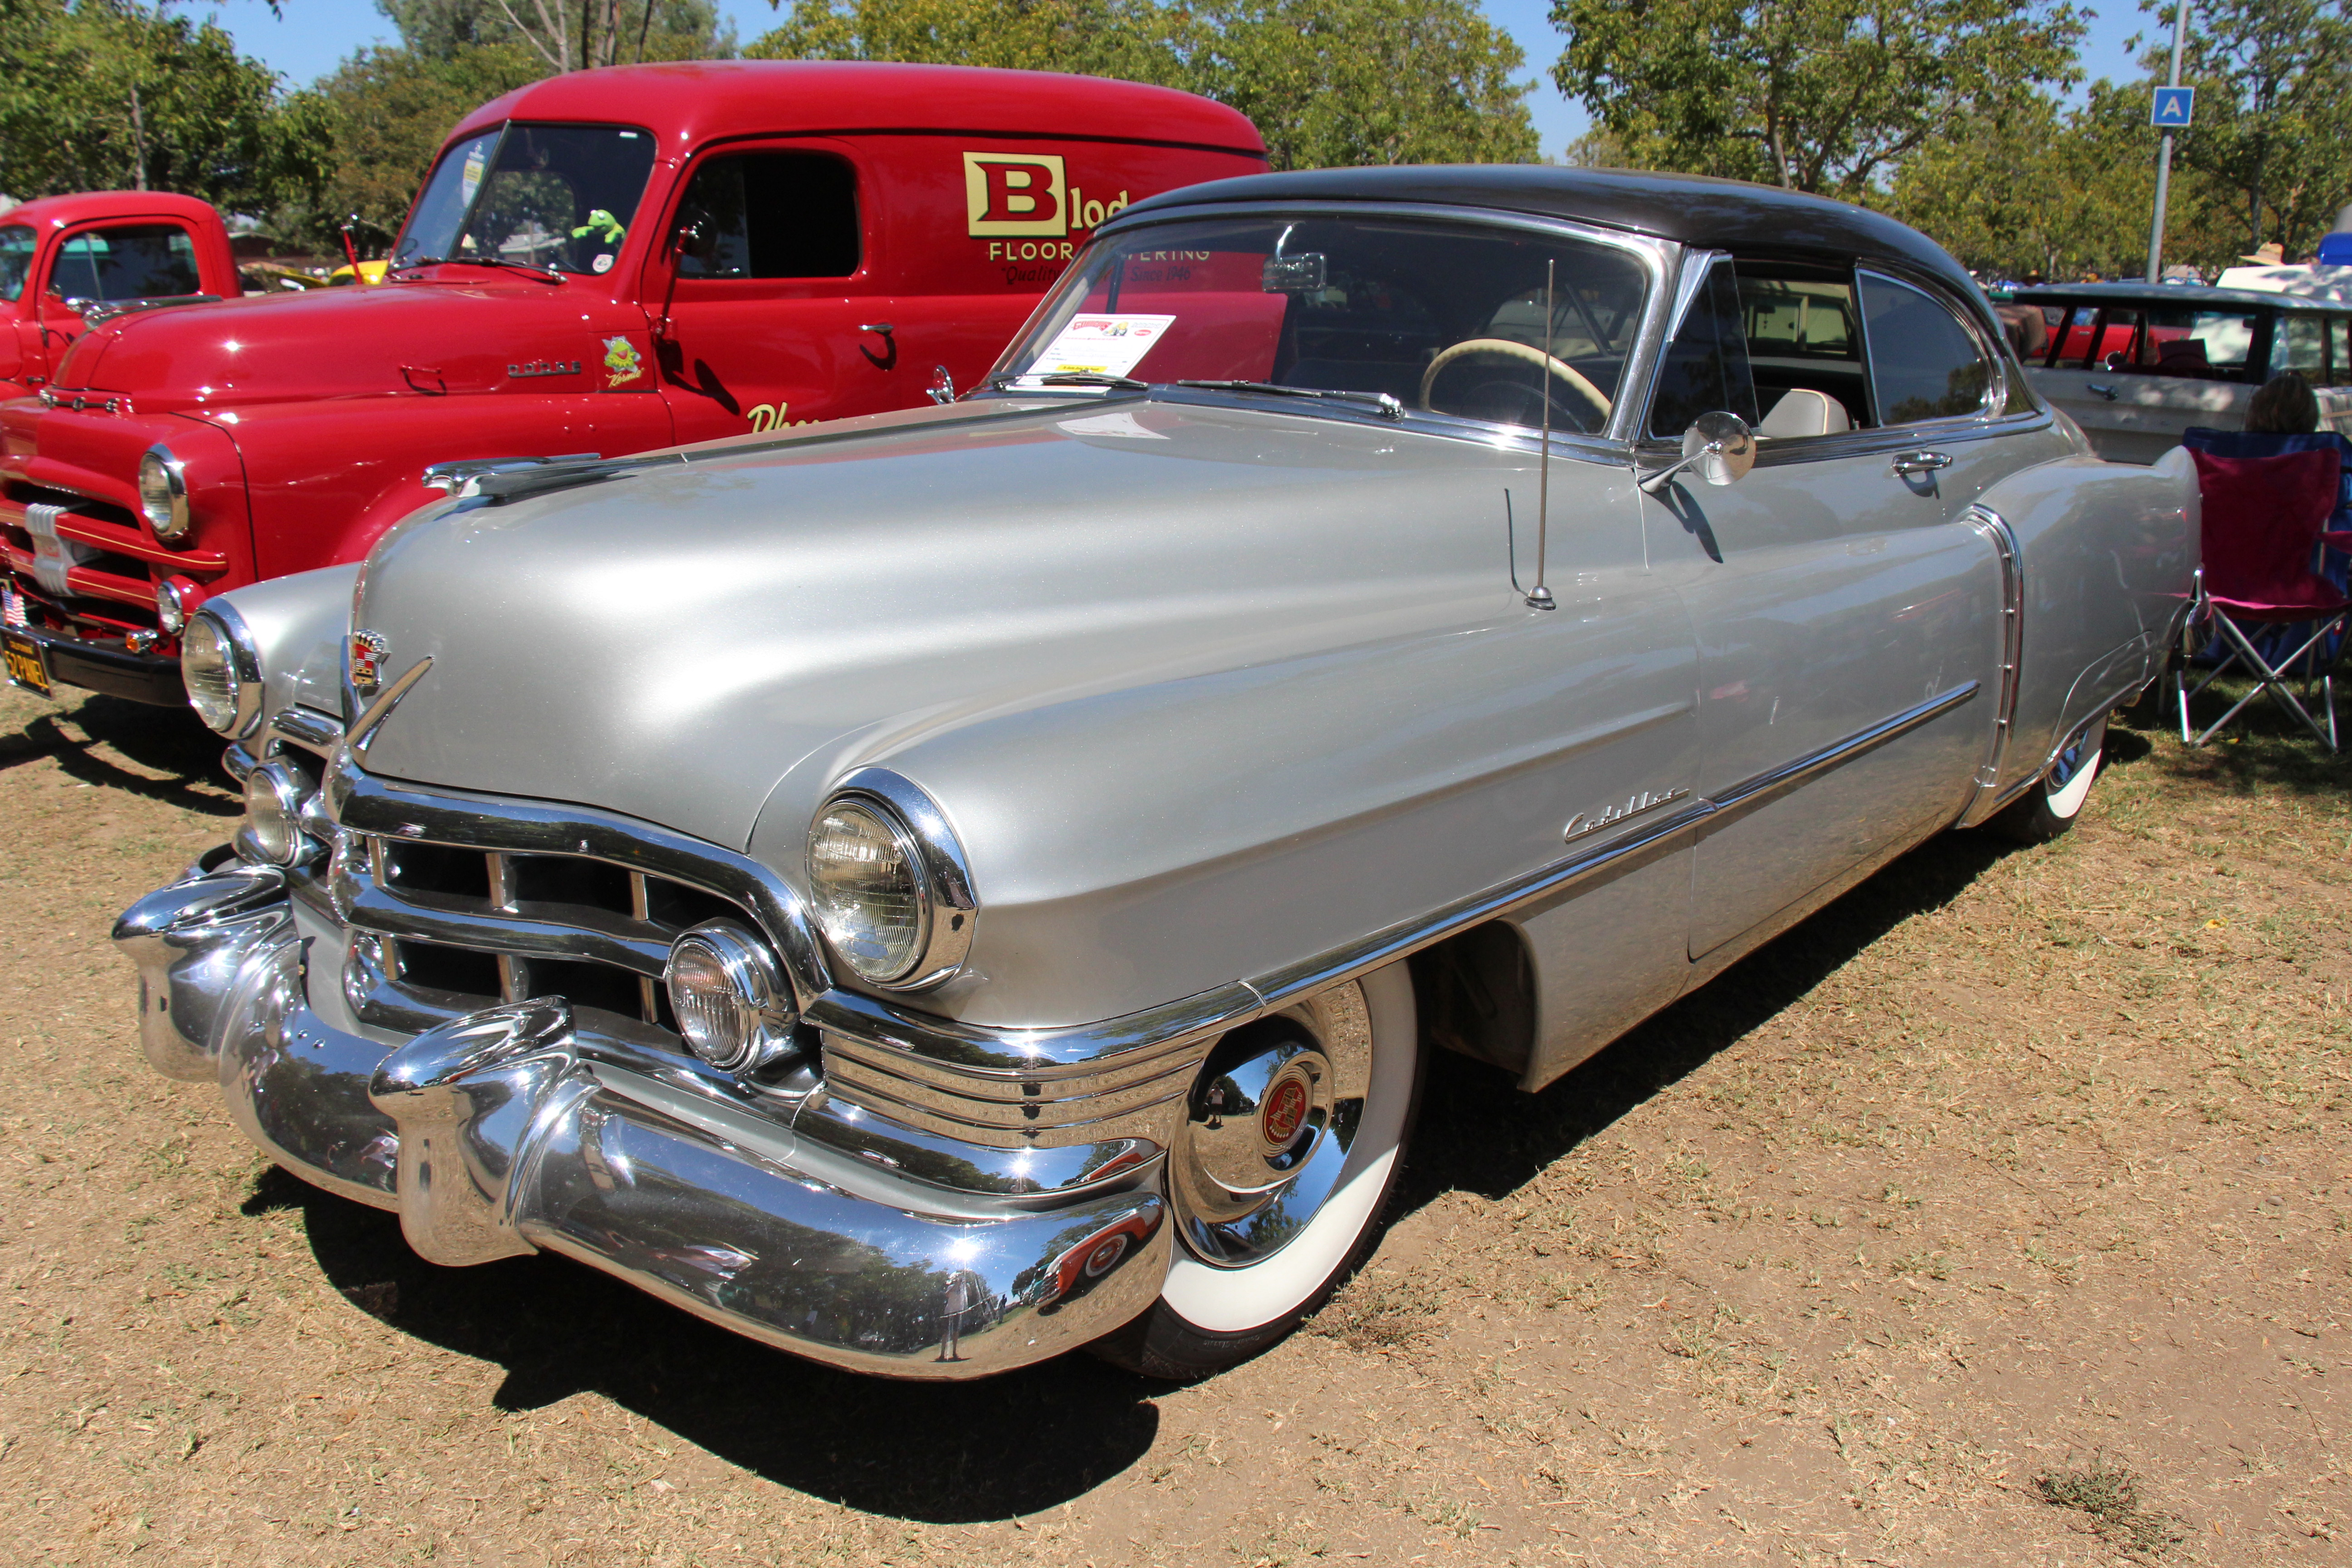 File:1950 Cadillac Series 62 Coupe deVille.jpg - Wikimedia Commons